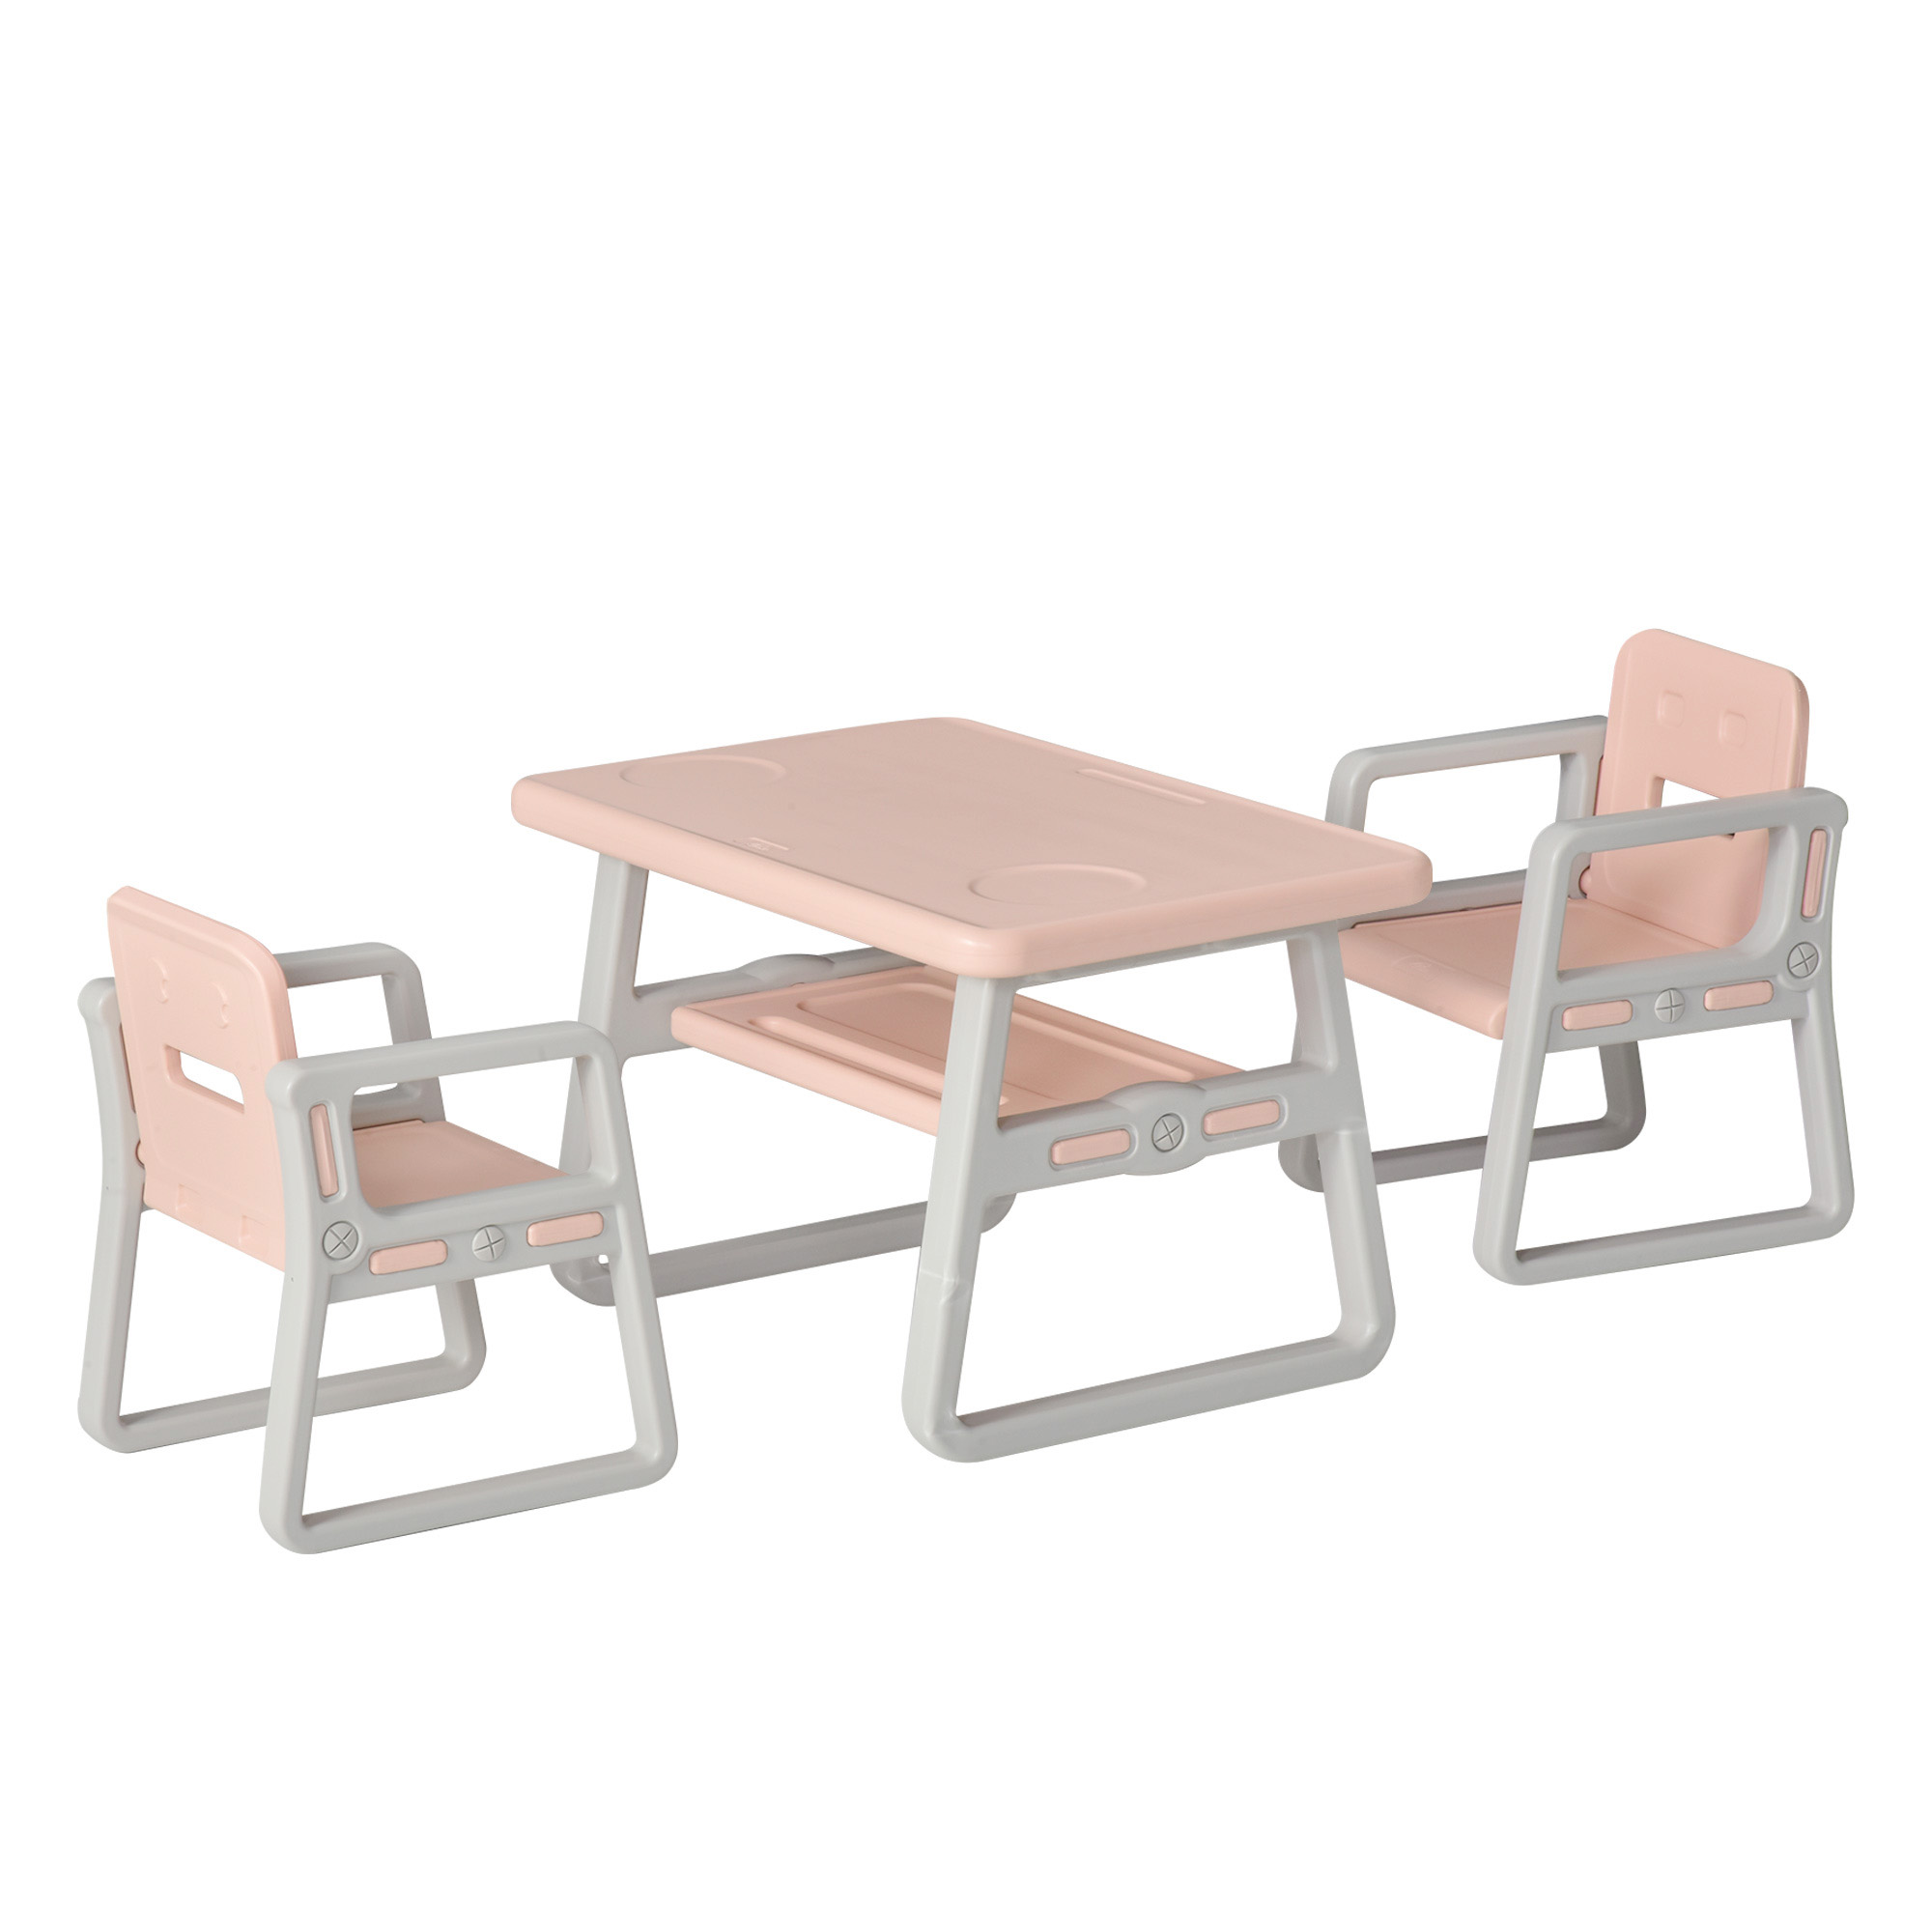 HOMCOM Kid Table and Chairs Set Activity Play Table Writting Desk with 2 High-Back Chairs Storage Tray - Pink   Aosom IE